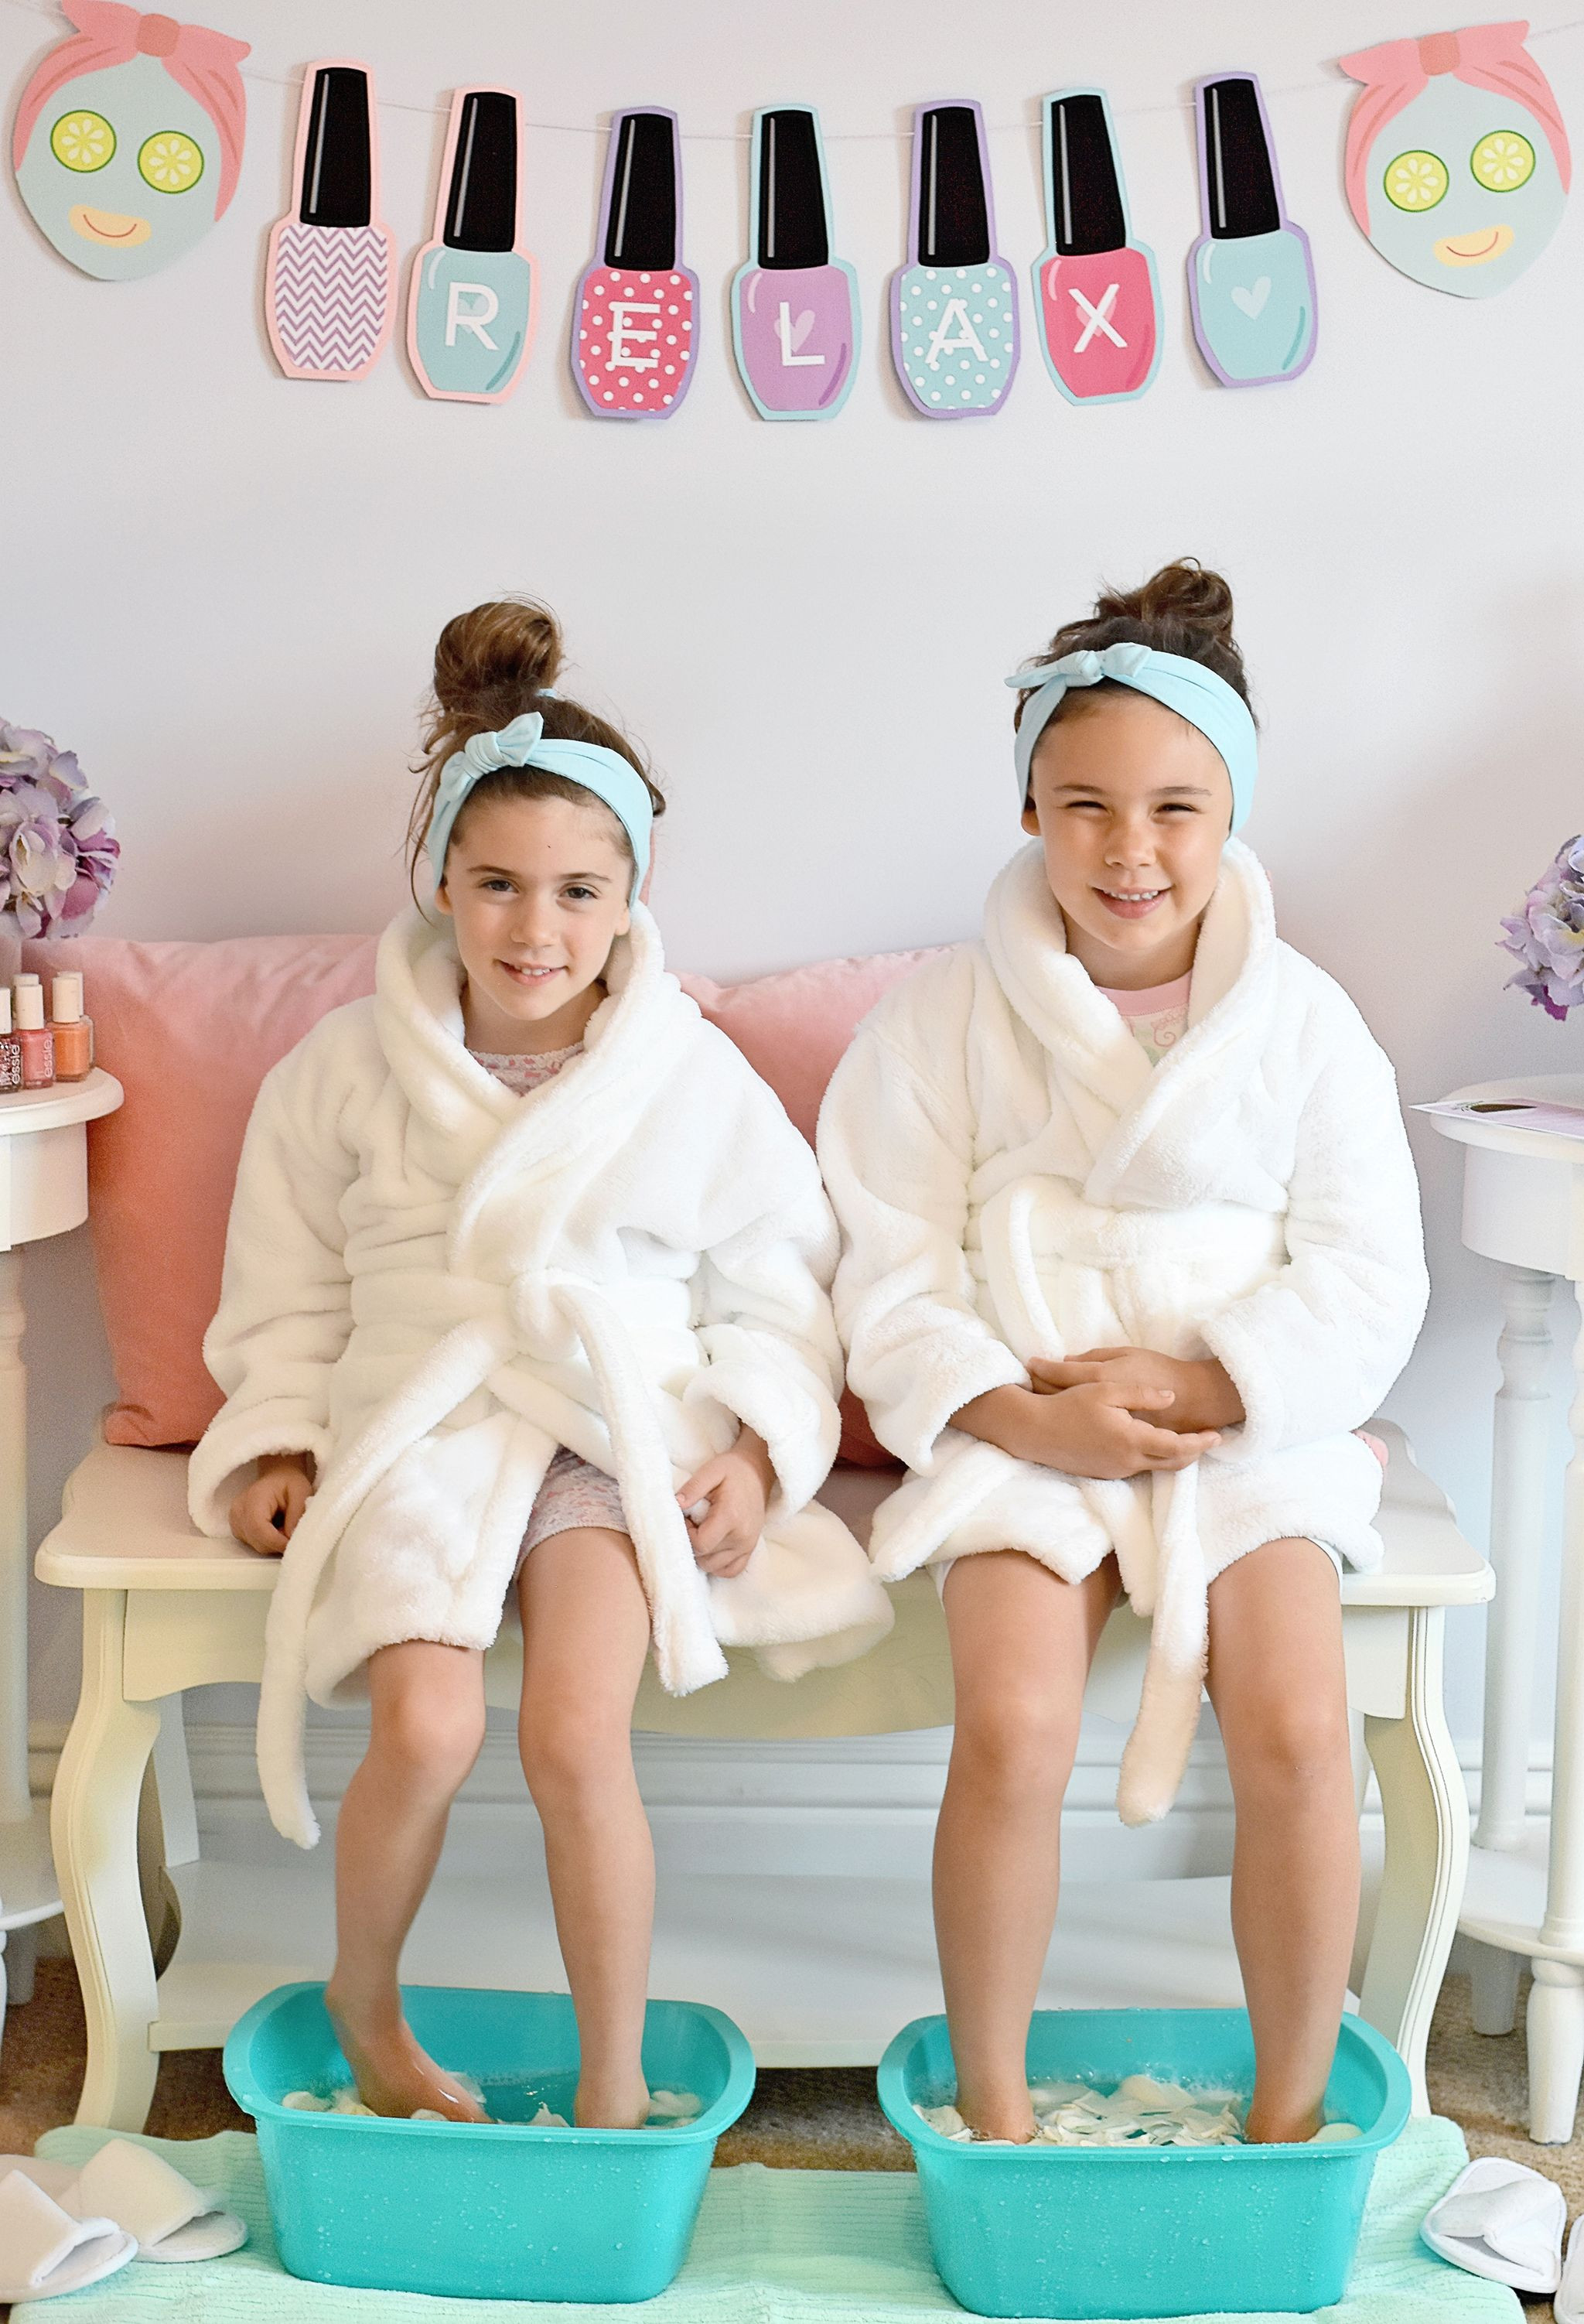 Best ideas about DIY Kids Spa Party . Save or Pin How to Host a Spa Day for Kids Finds for Mom Now.